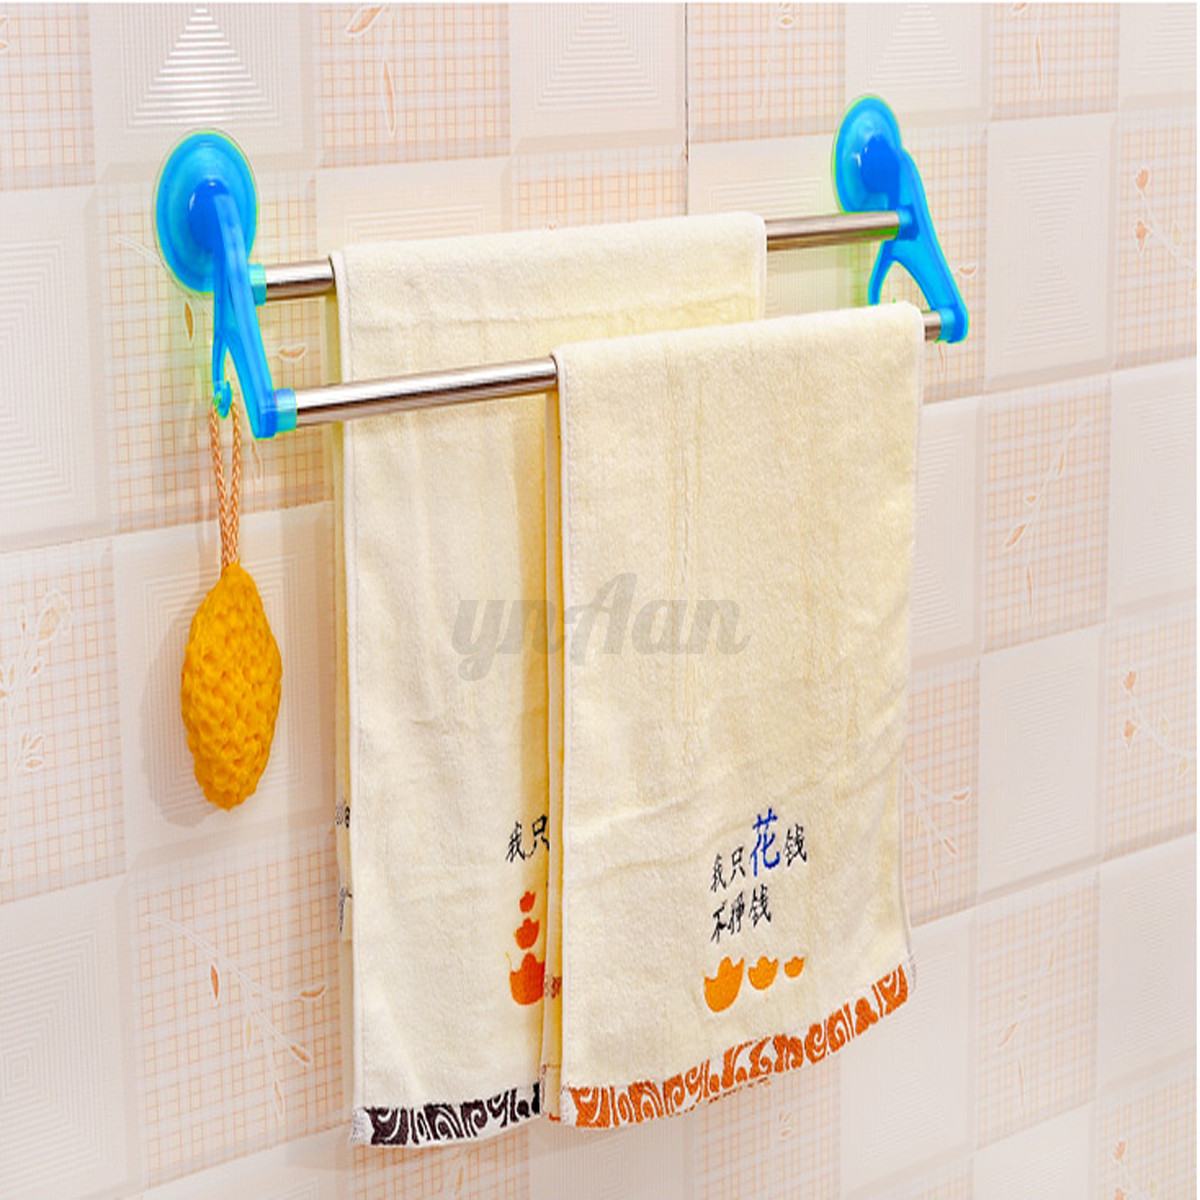 Ventouse porte serviette crochet etag re mural support - Crochet ventouse salle de bain ...